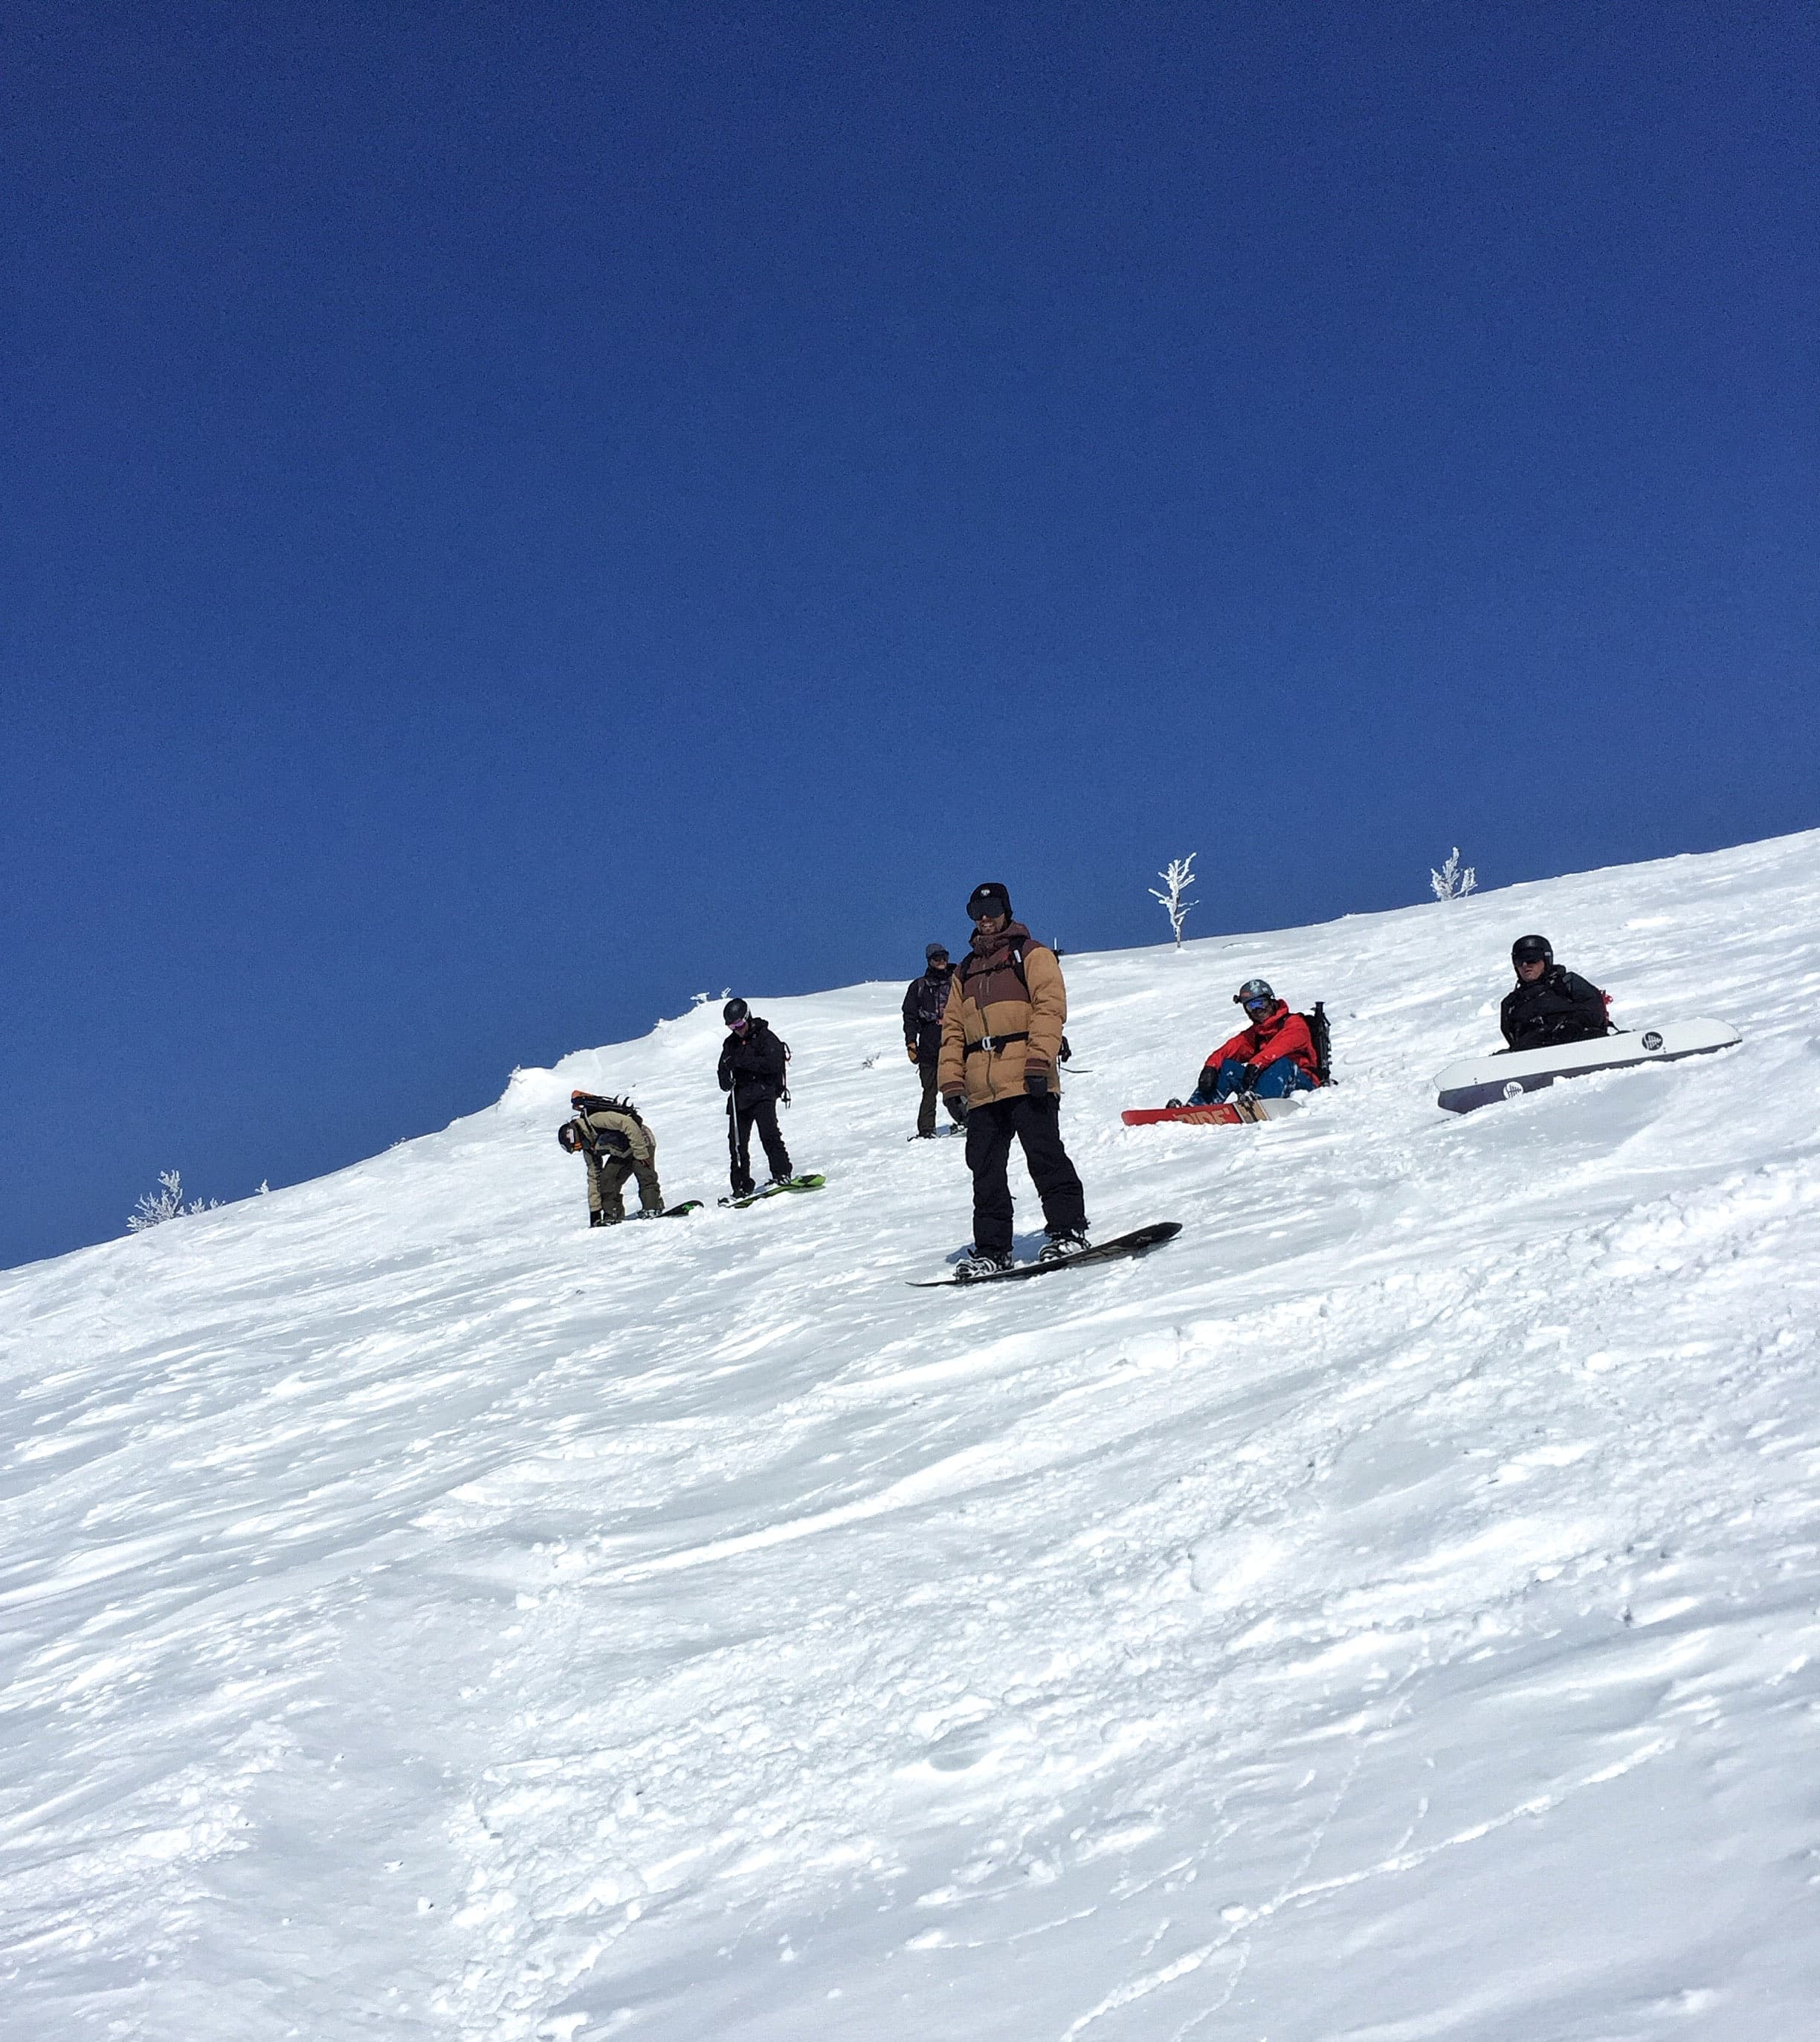 Snowboarders waiting to drop Asahidake